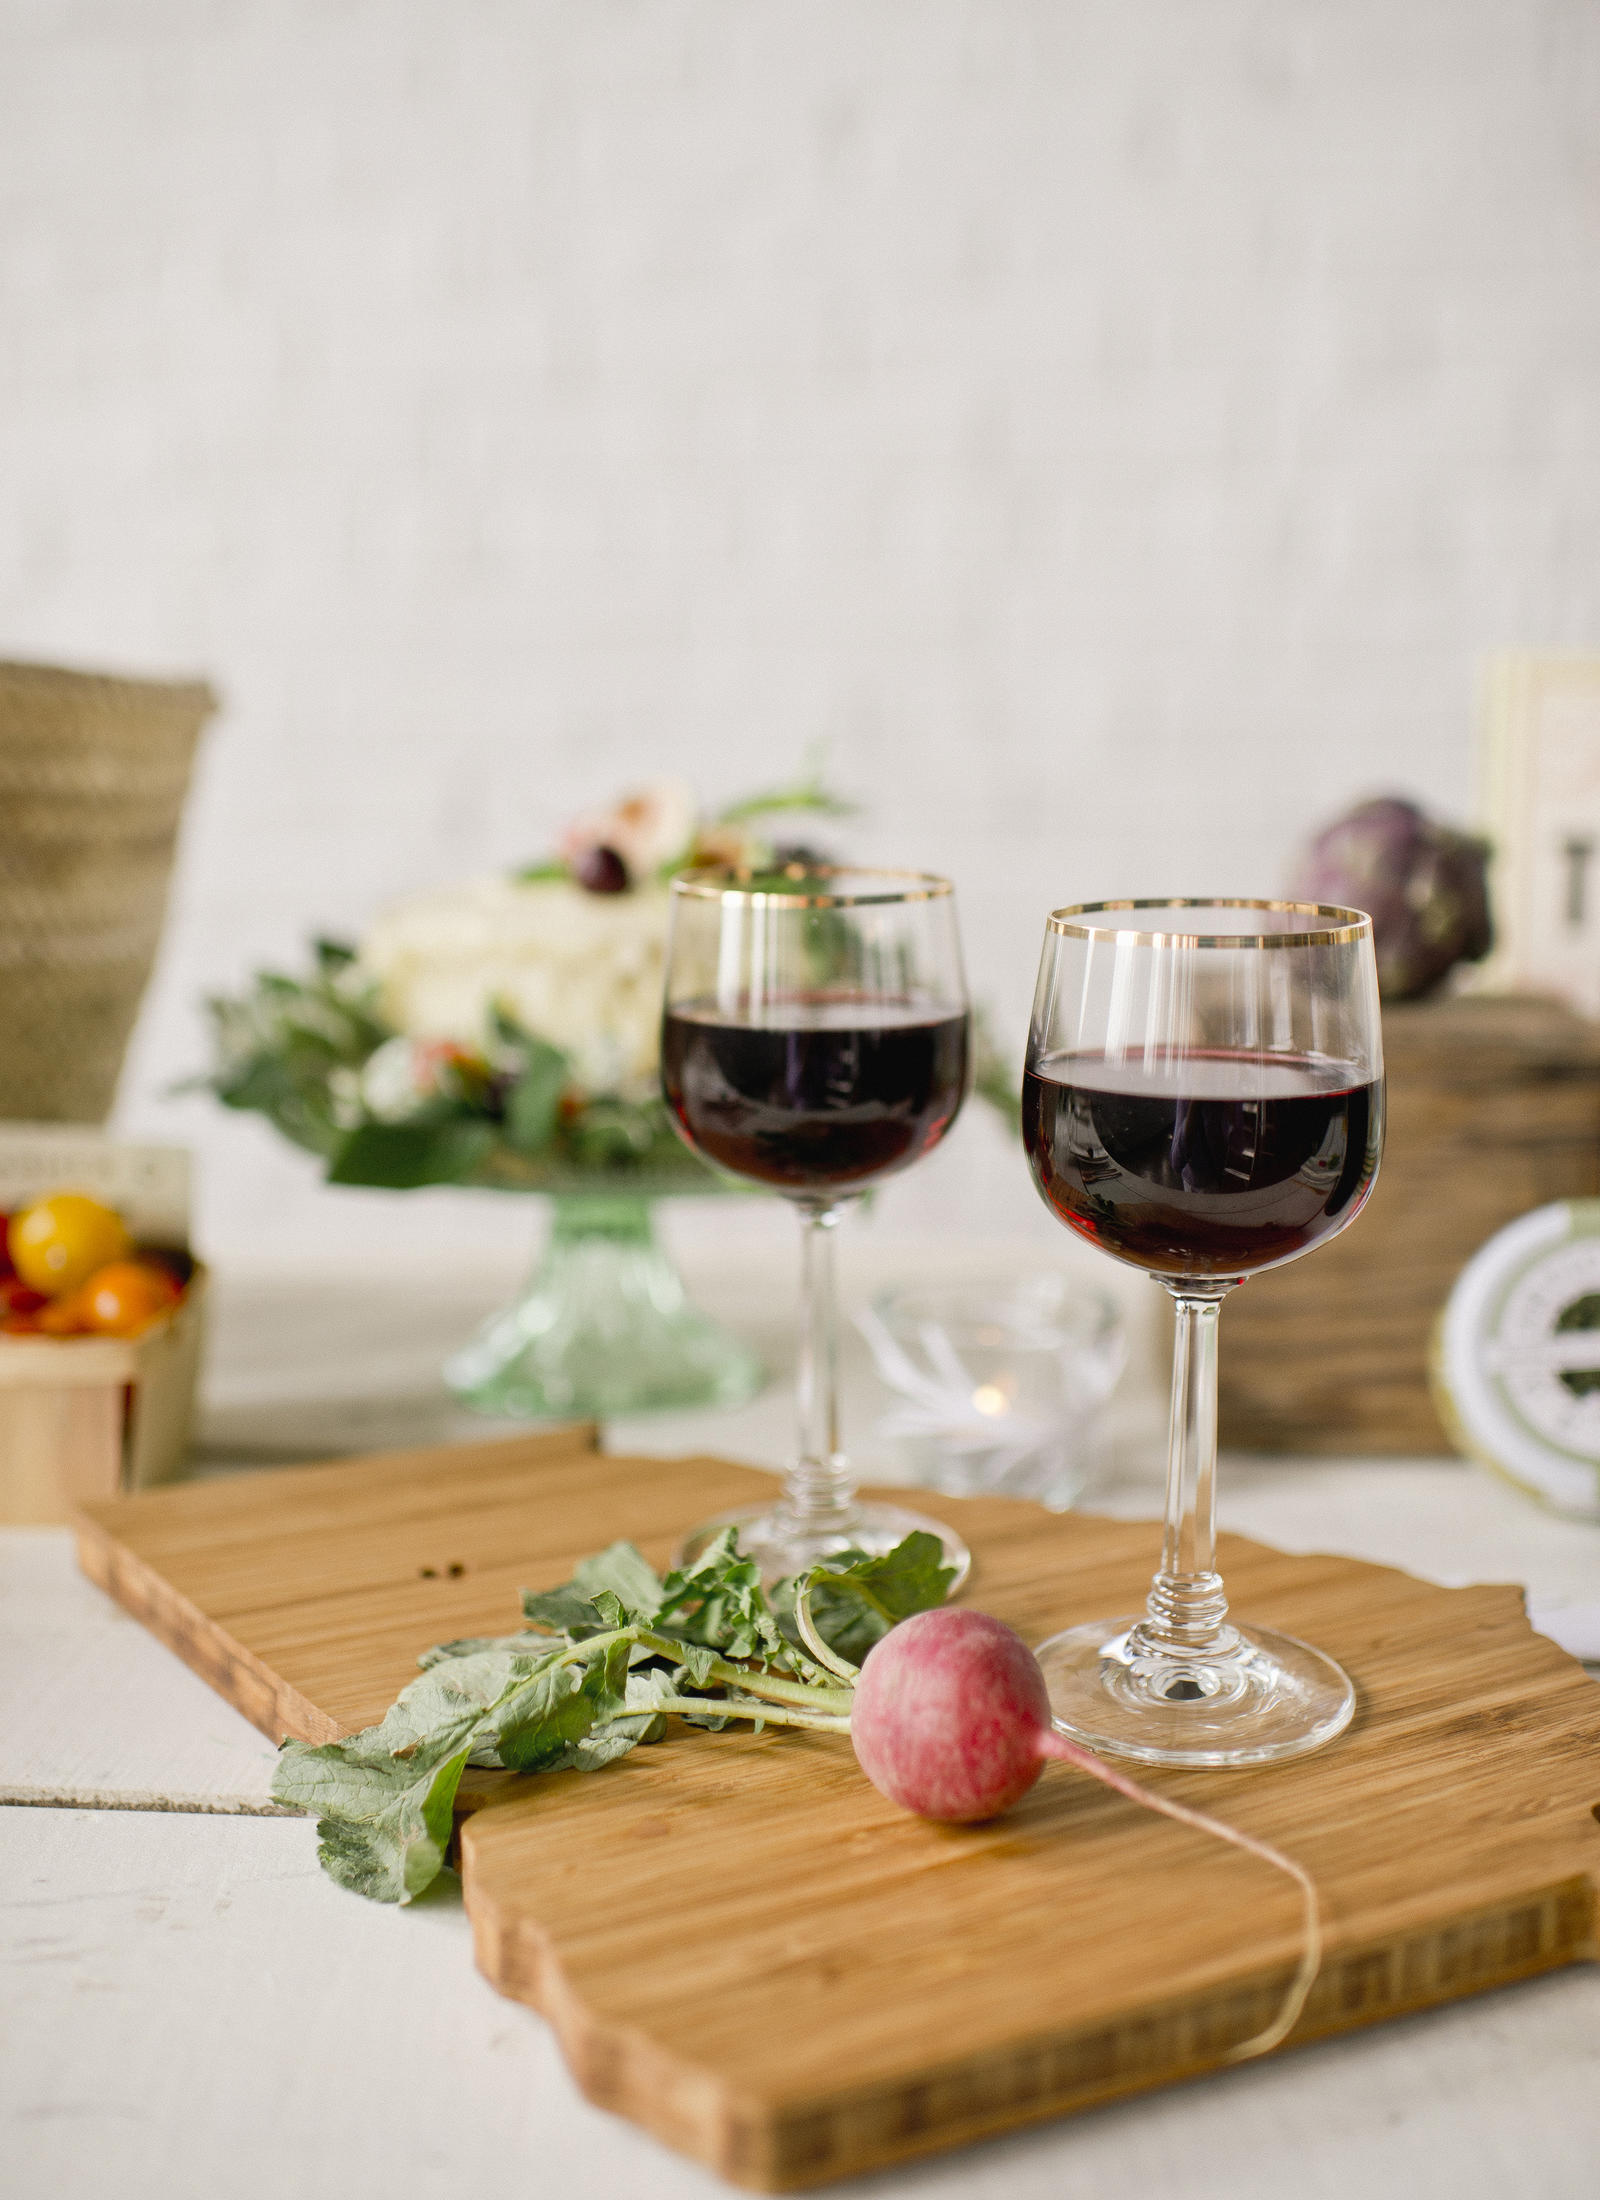 Lifestyle Photography | Atlanta, GA | Two filled wine glasses on a cutting board.